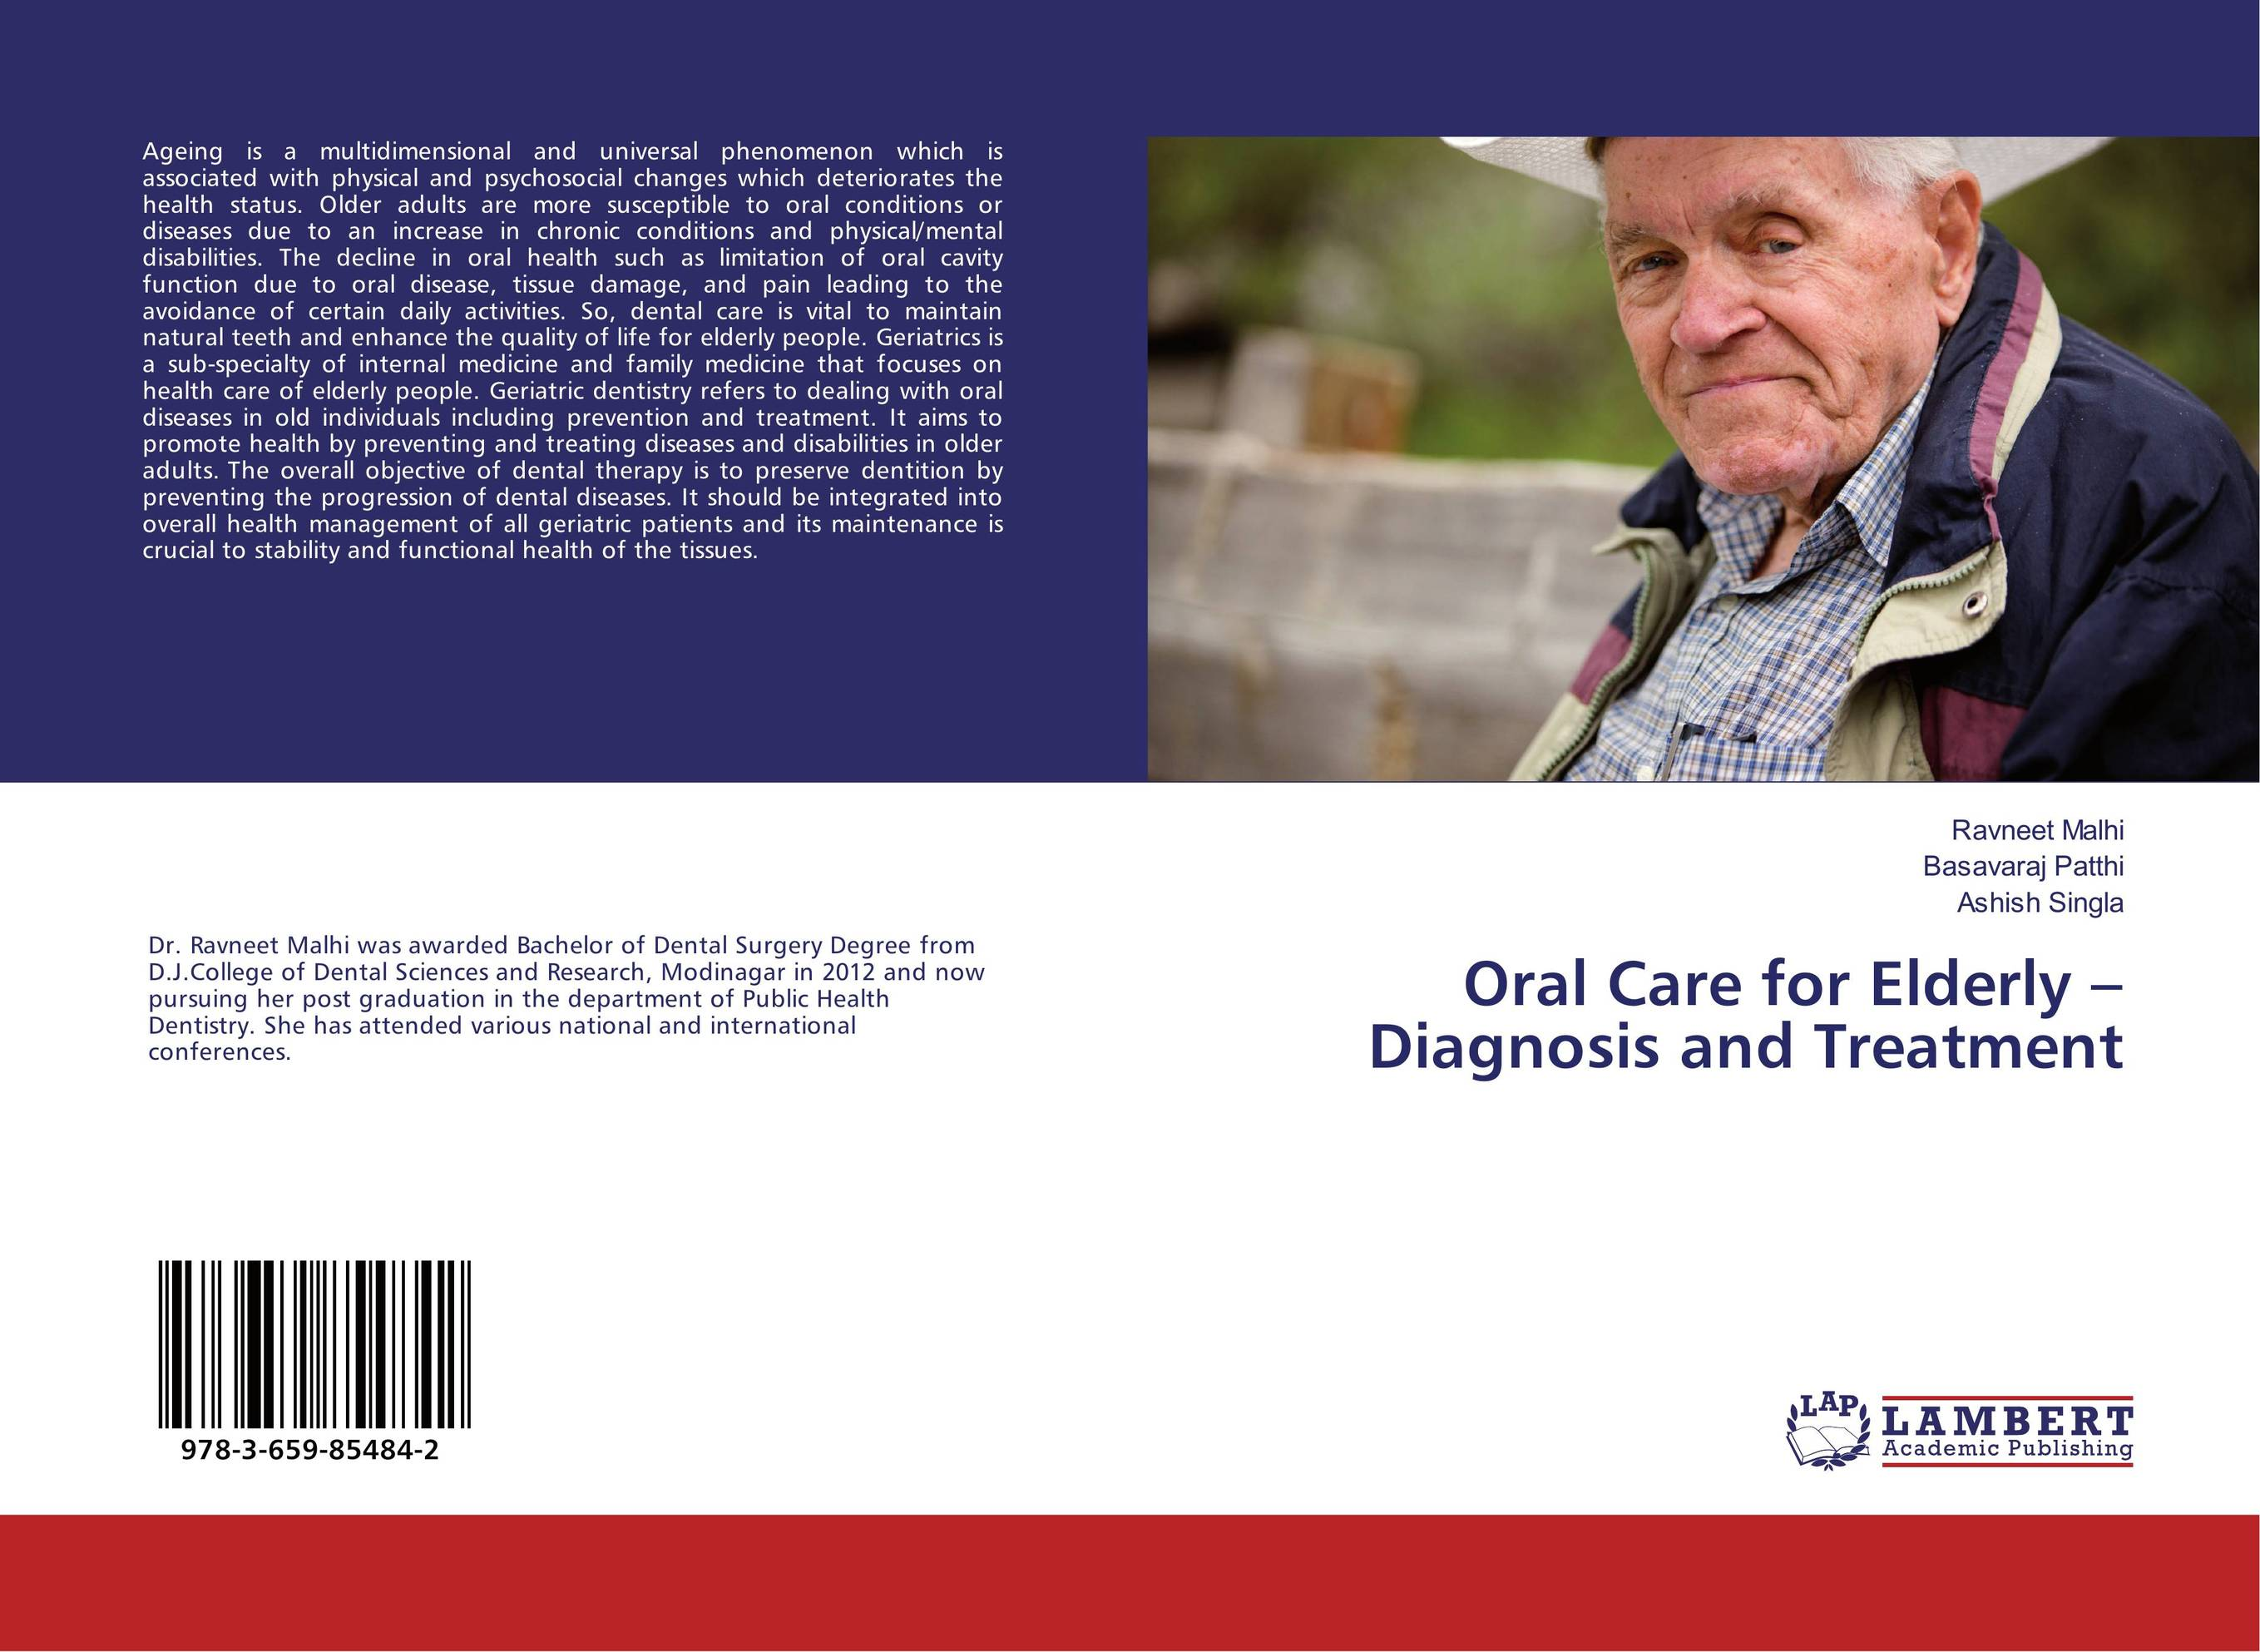 Oral Care for Elderly –Diagnosis and Treatment peter lockhart b oral medicine and medically complex patients